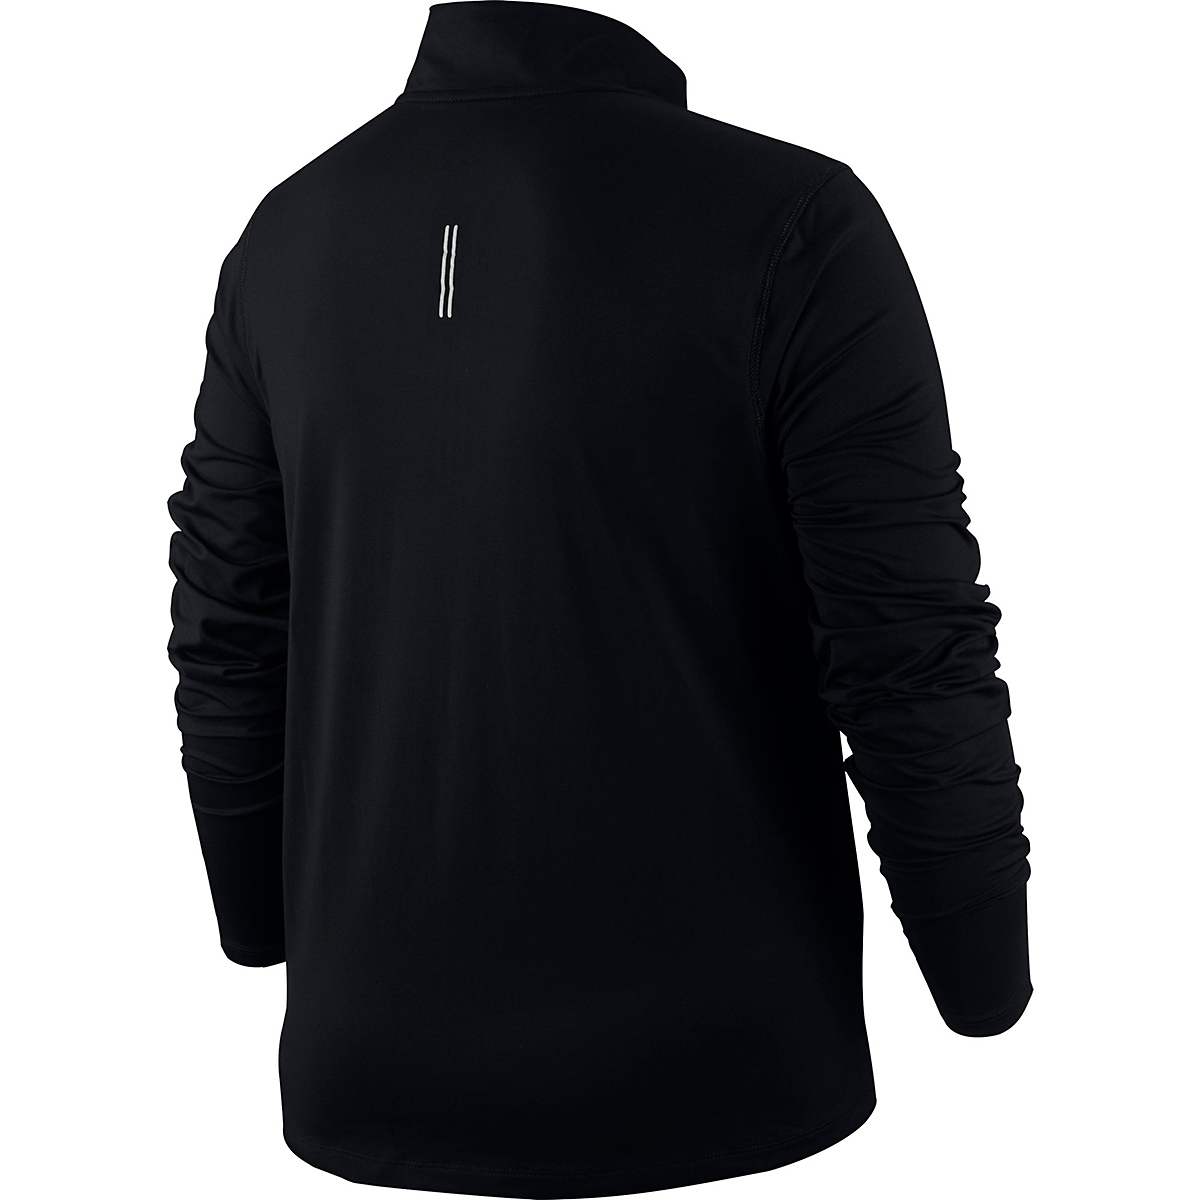 Women's Nike Element 1/2-Zip Running Top - Color: Black - Size: S, Black, large, image 2